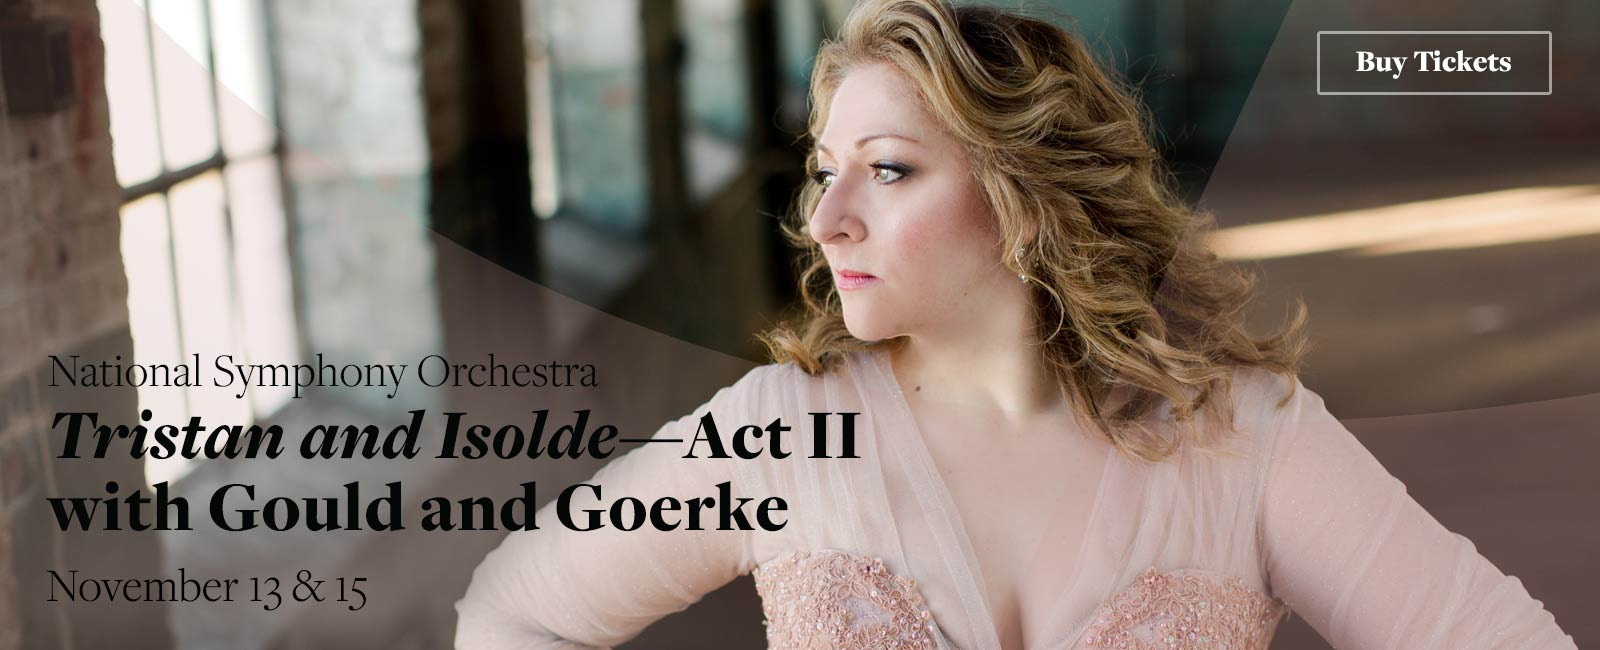 National Symphony Orchestra: Noseda conducts Tristan and Isolde—Act II with Gould and Goerke